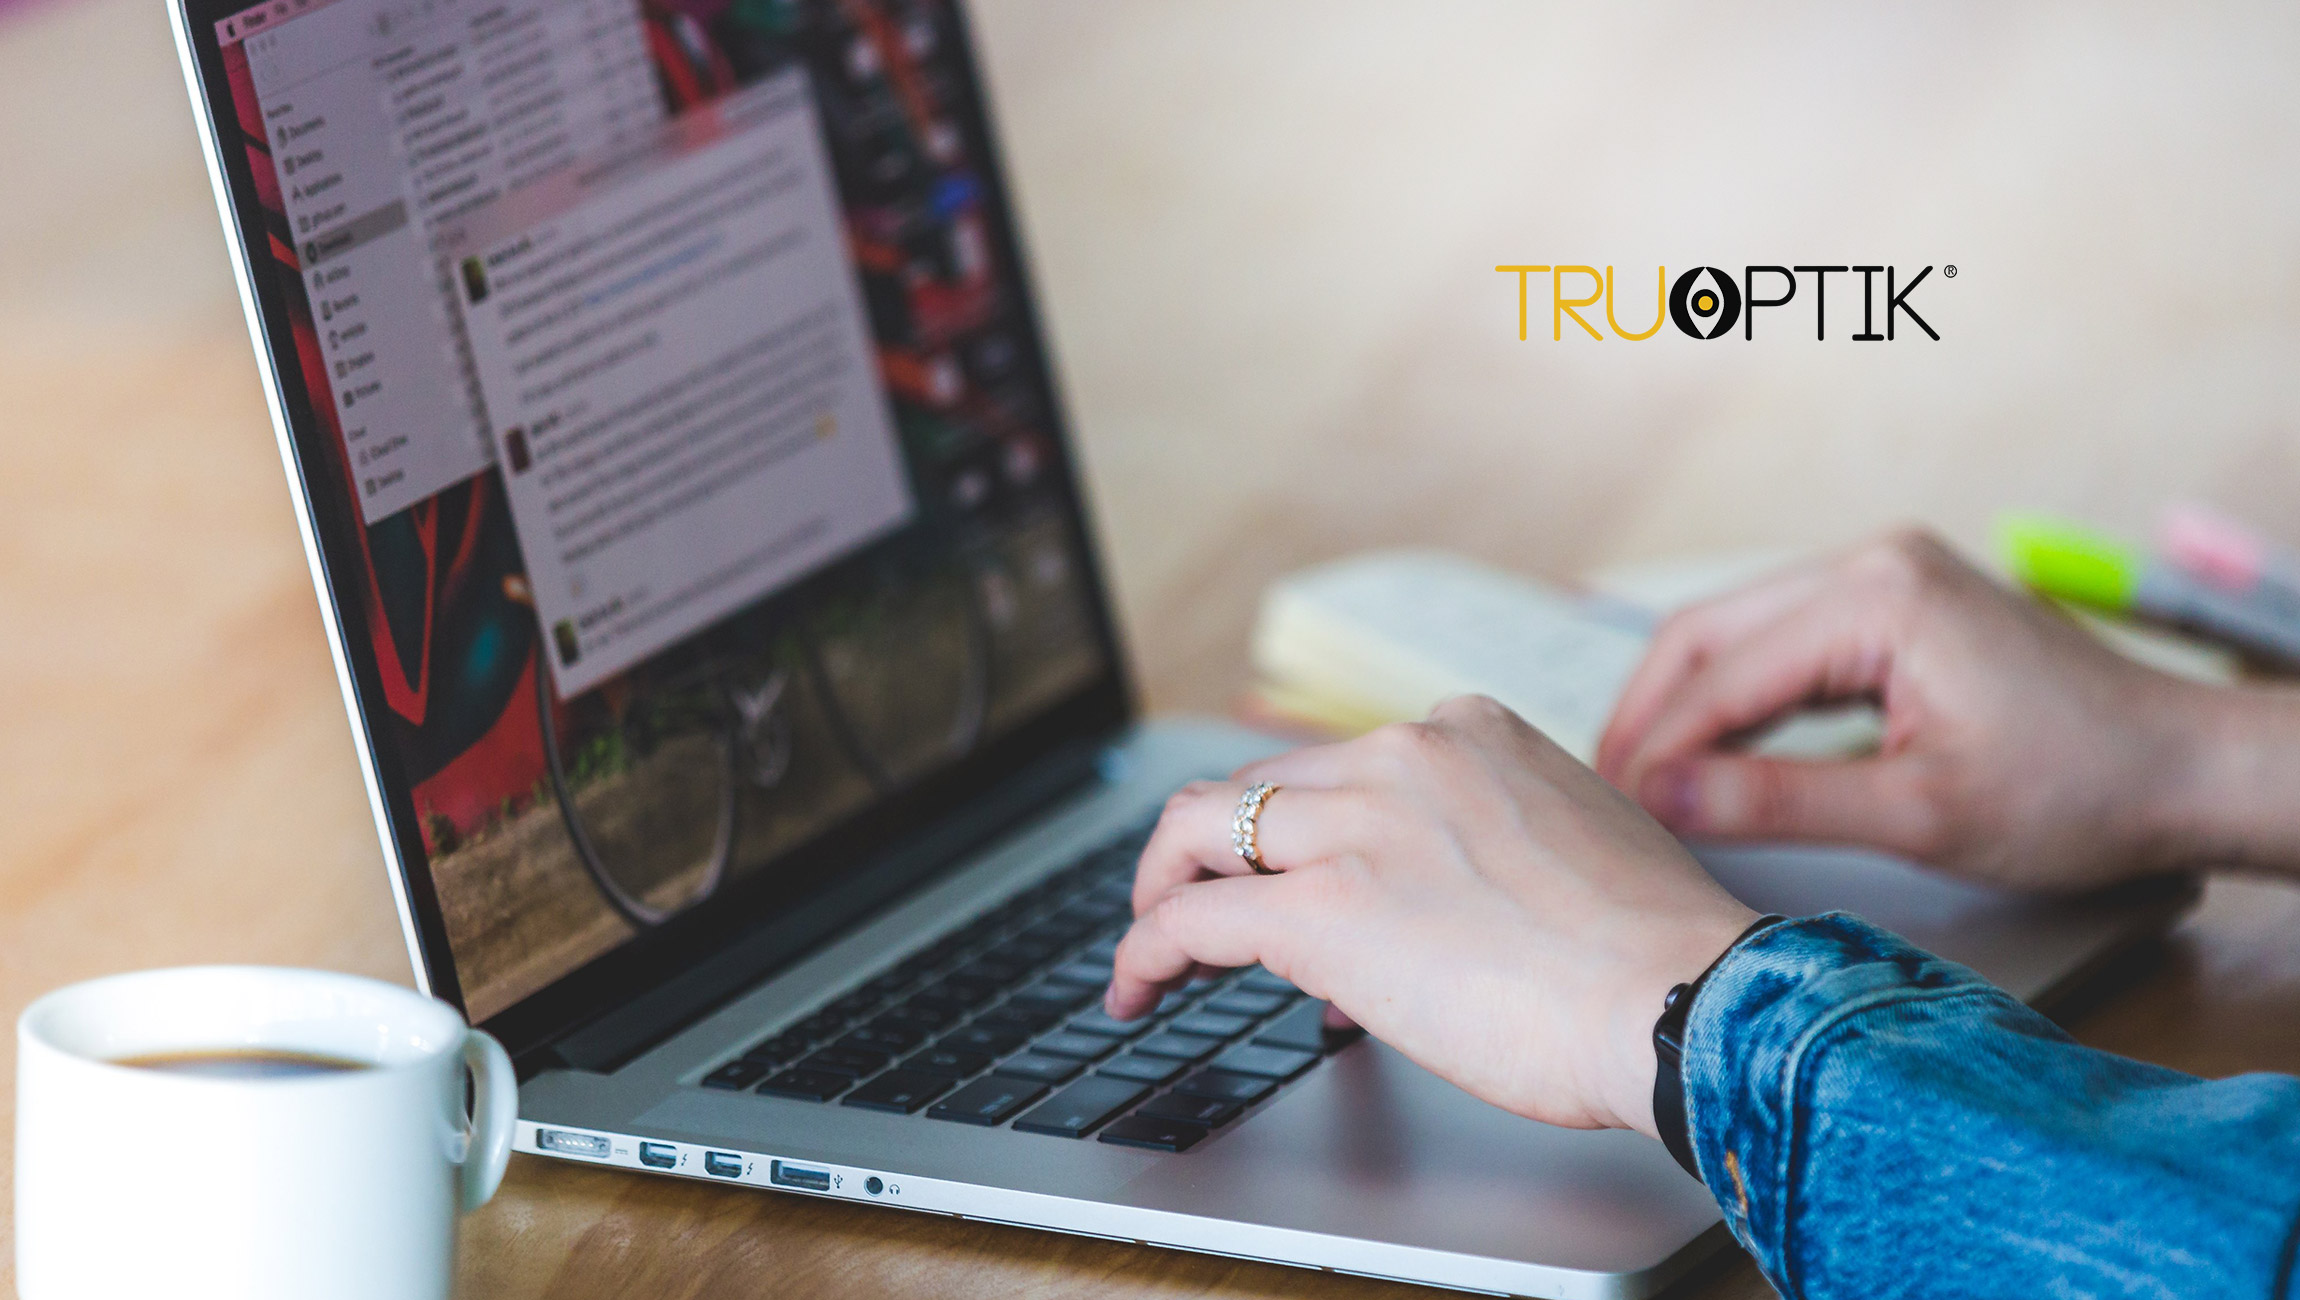 TruOptik Announces Cross-Screen Audience Validation for Refined OTT and CTV Adtech